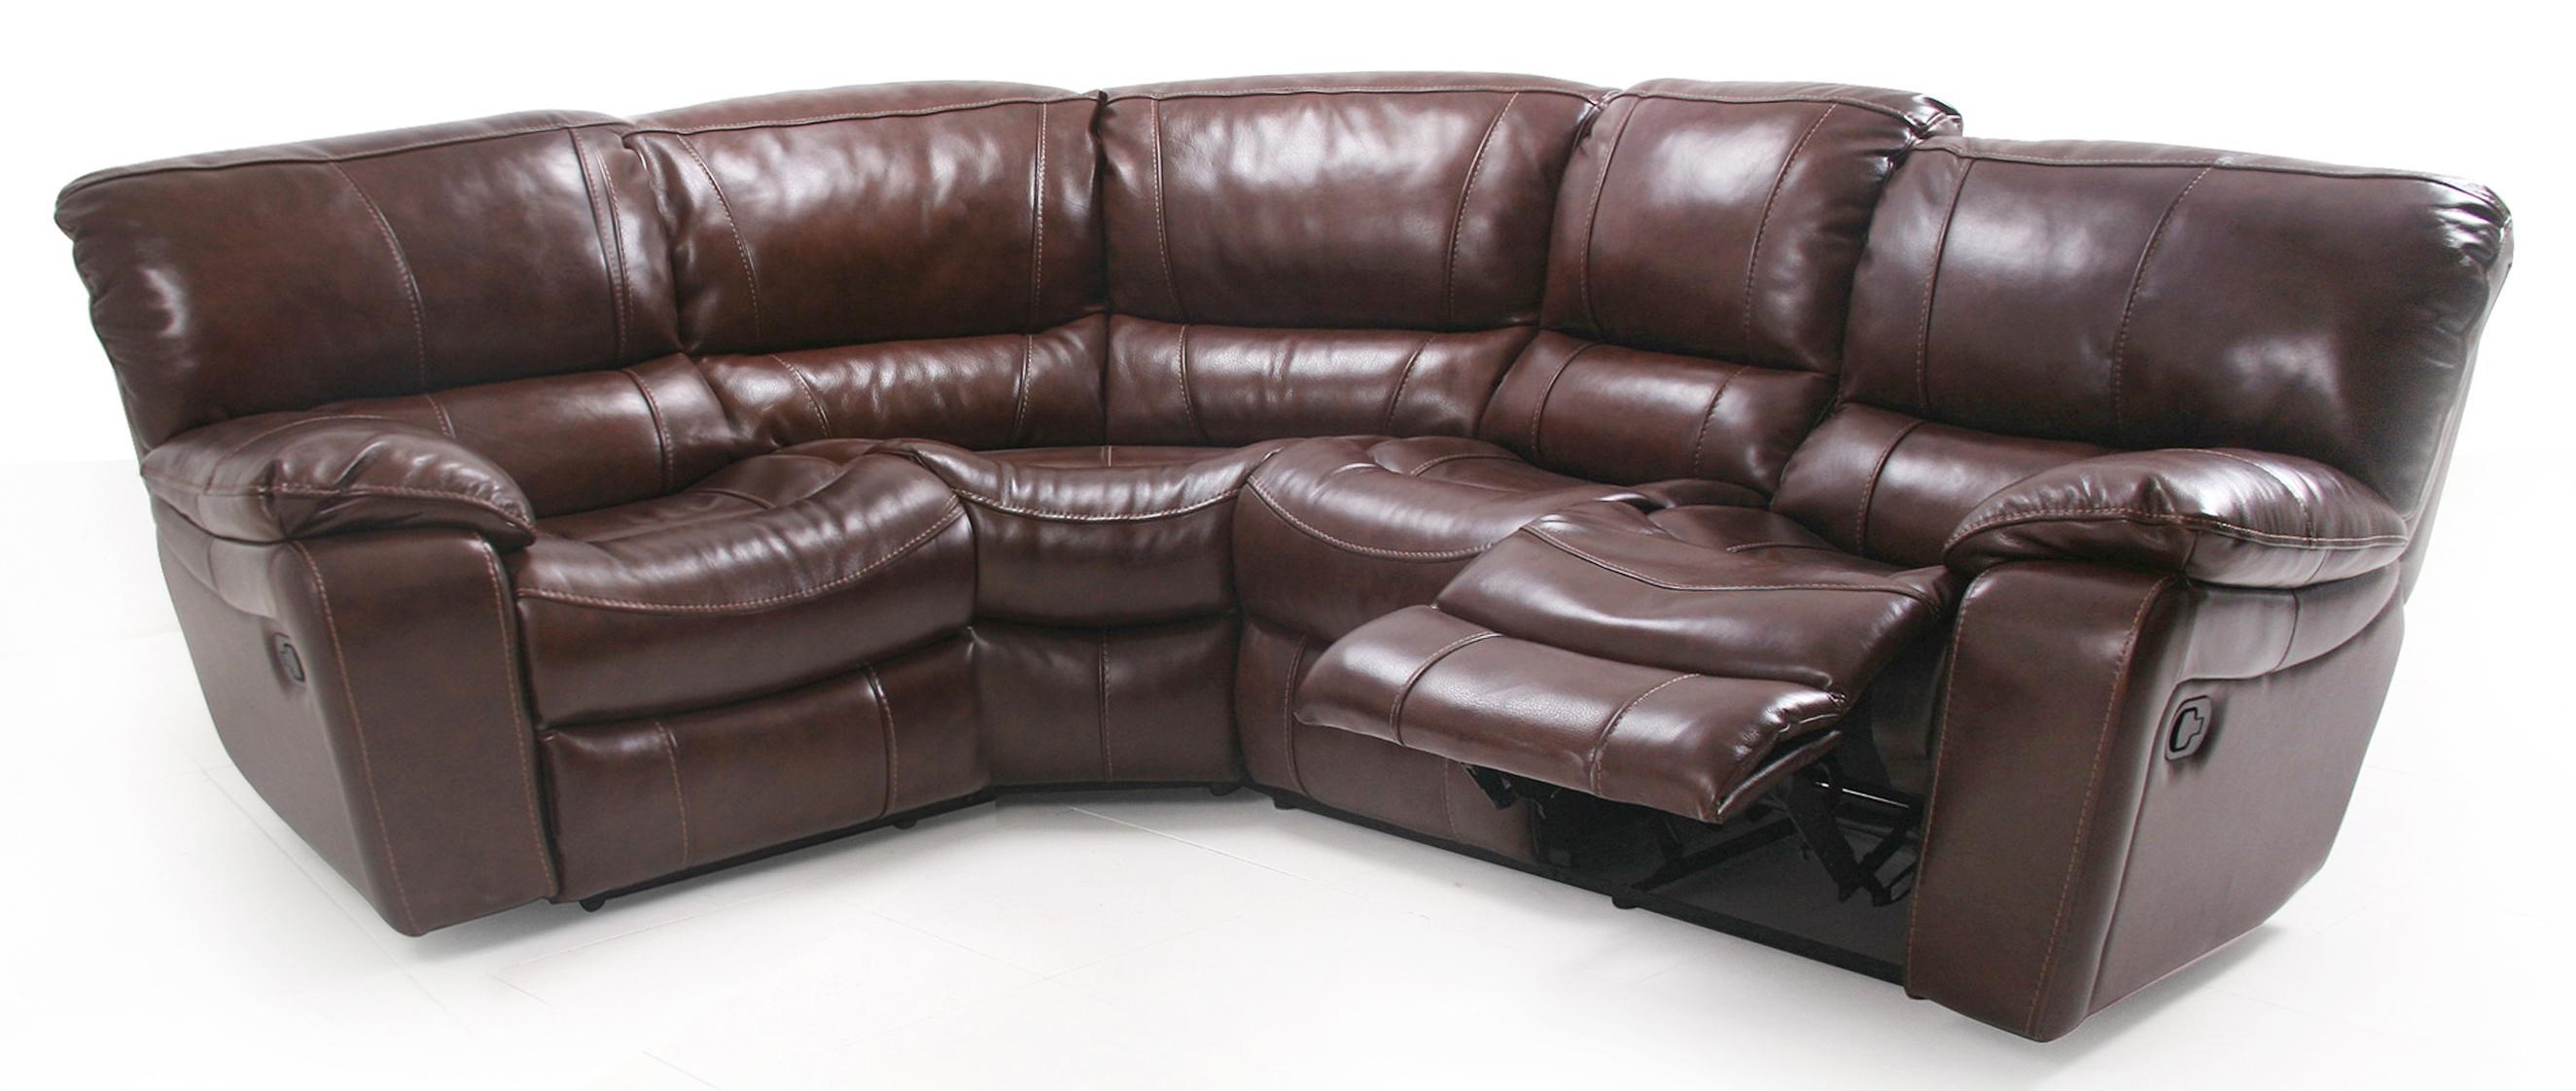 Cheers Sofa UX8625M 4 Seater Reclining Sectional Sofa